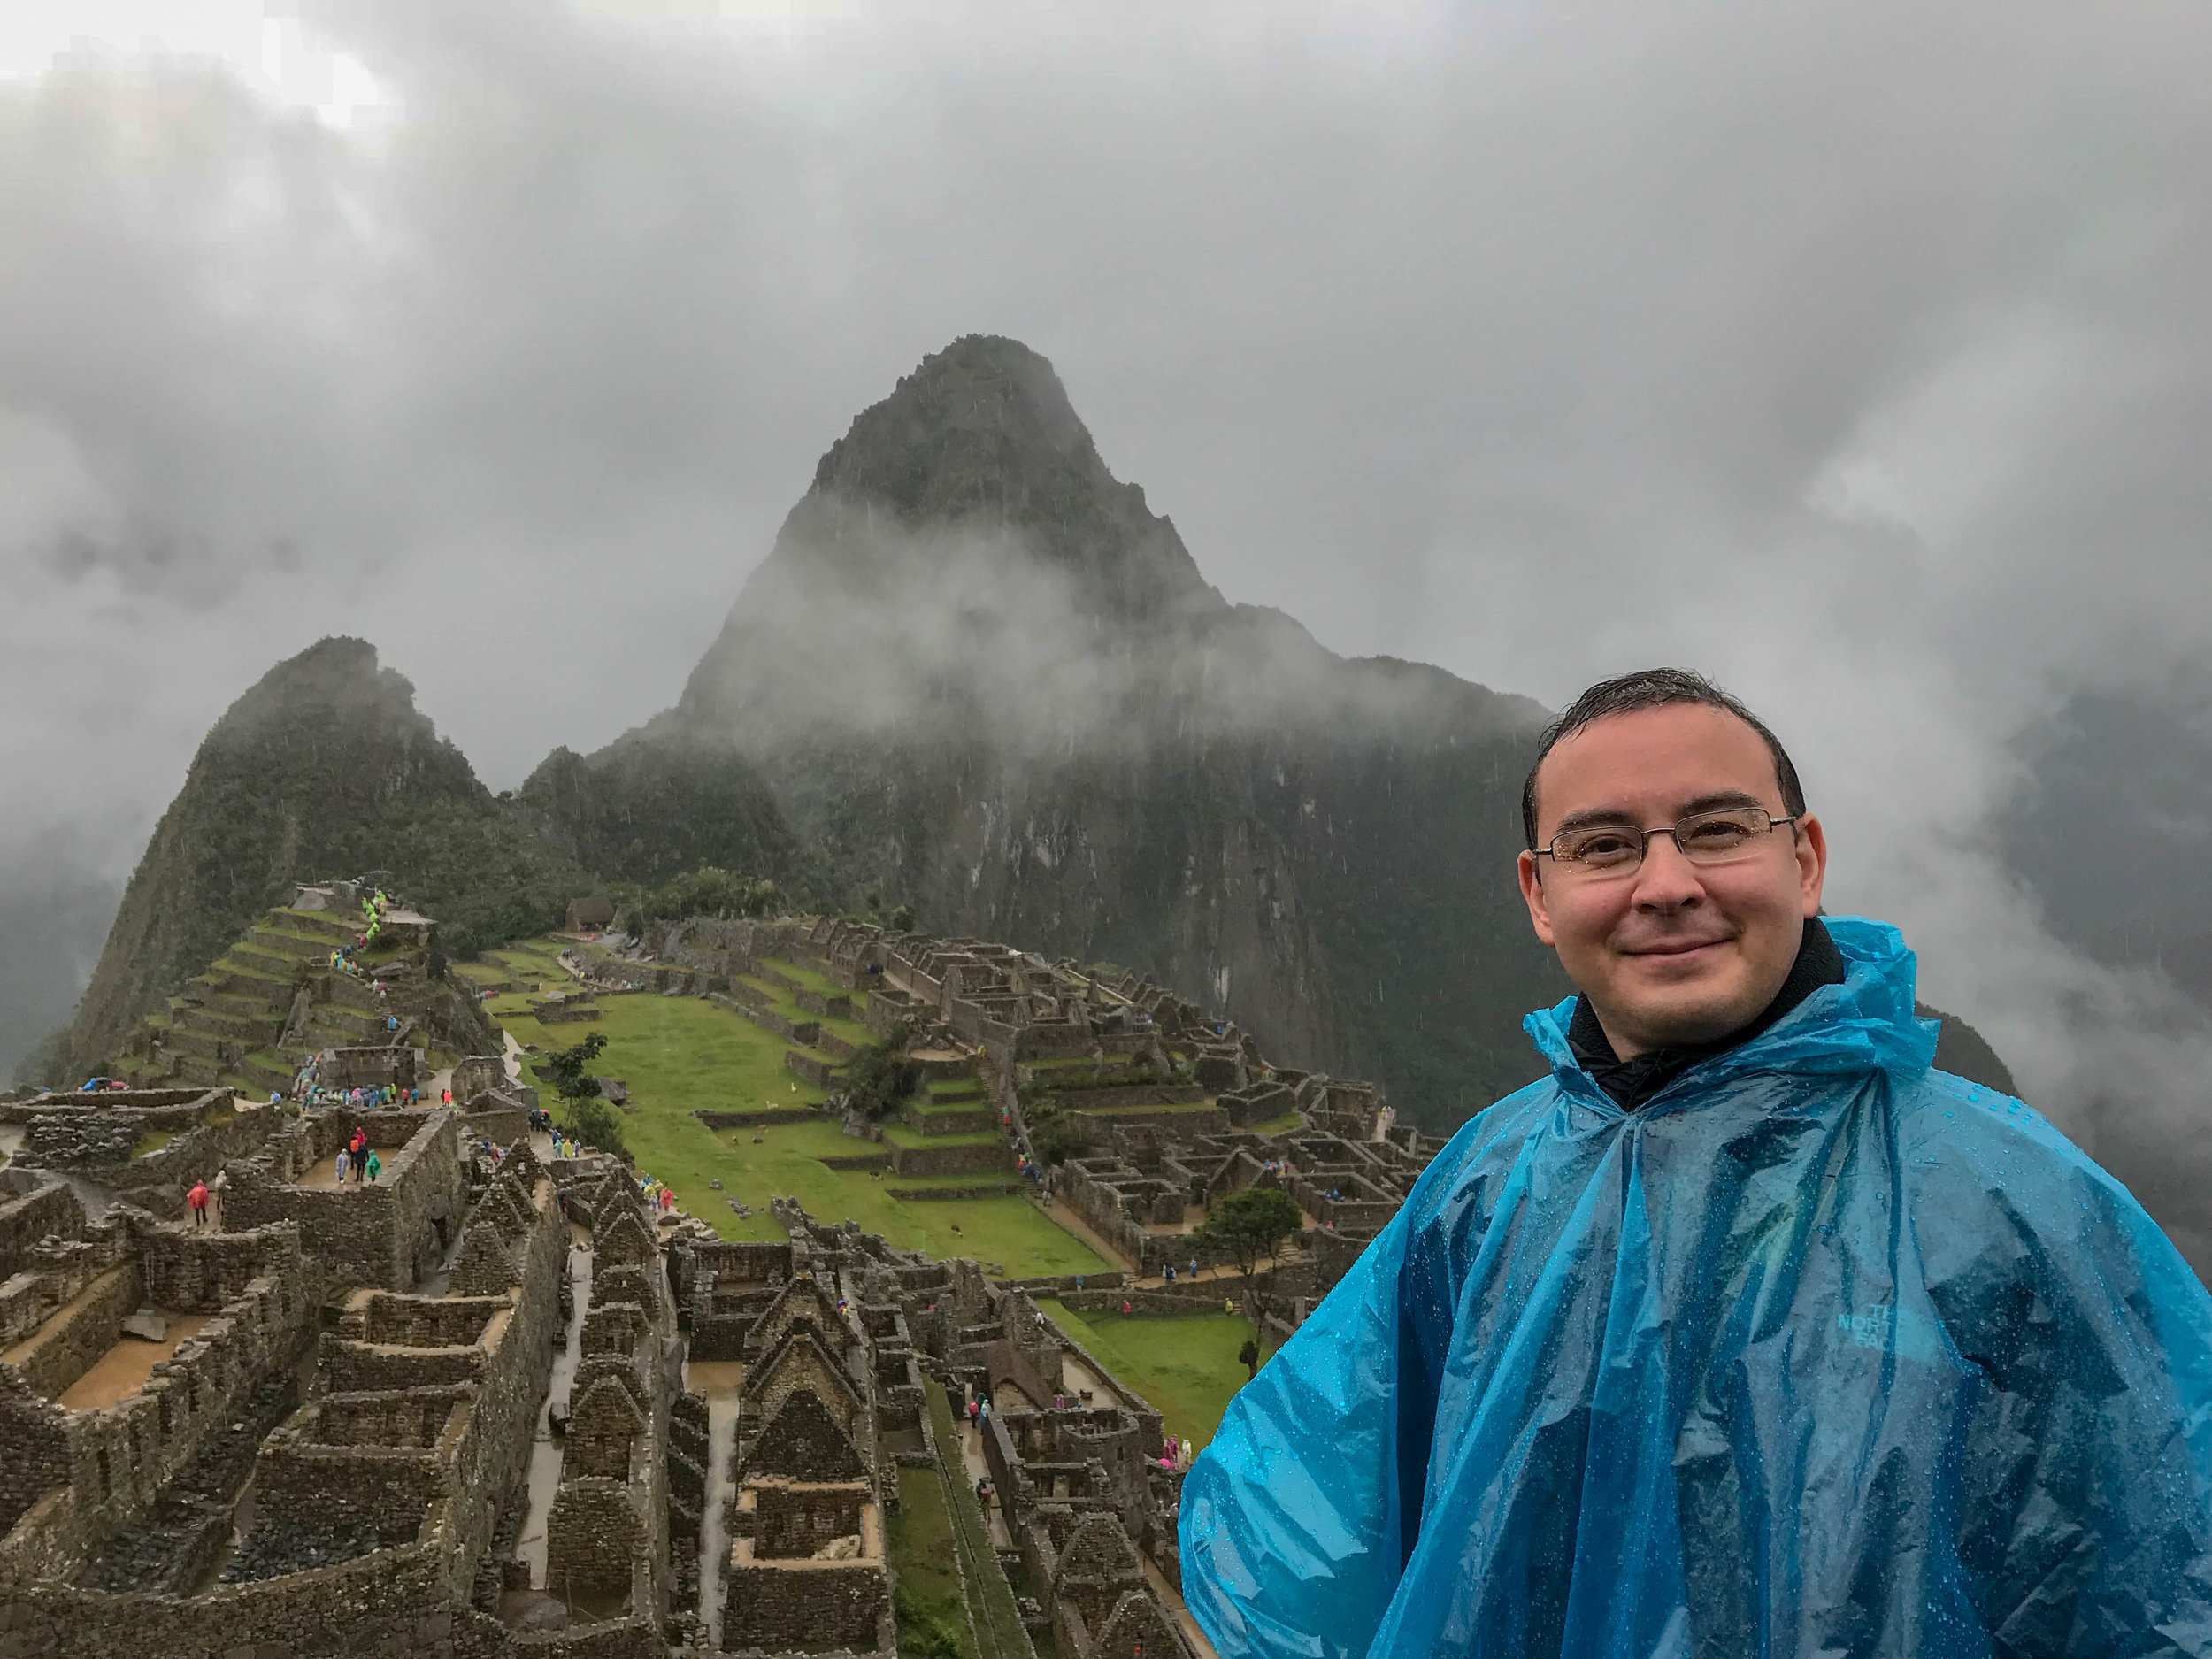 The author with Machu Picchu